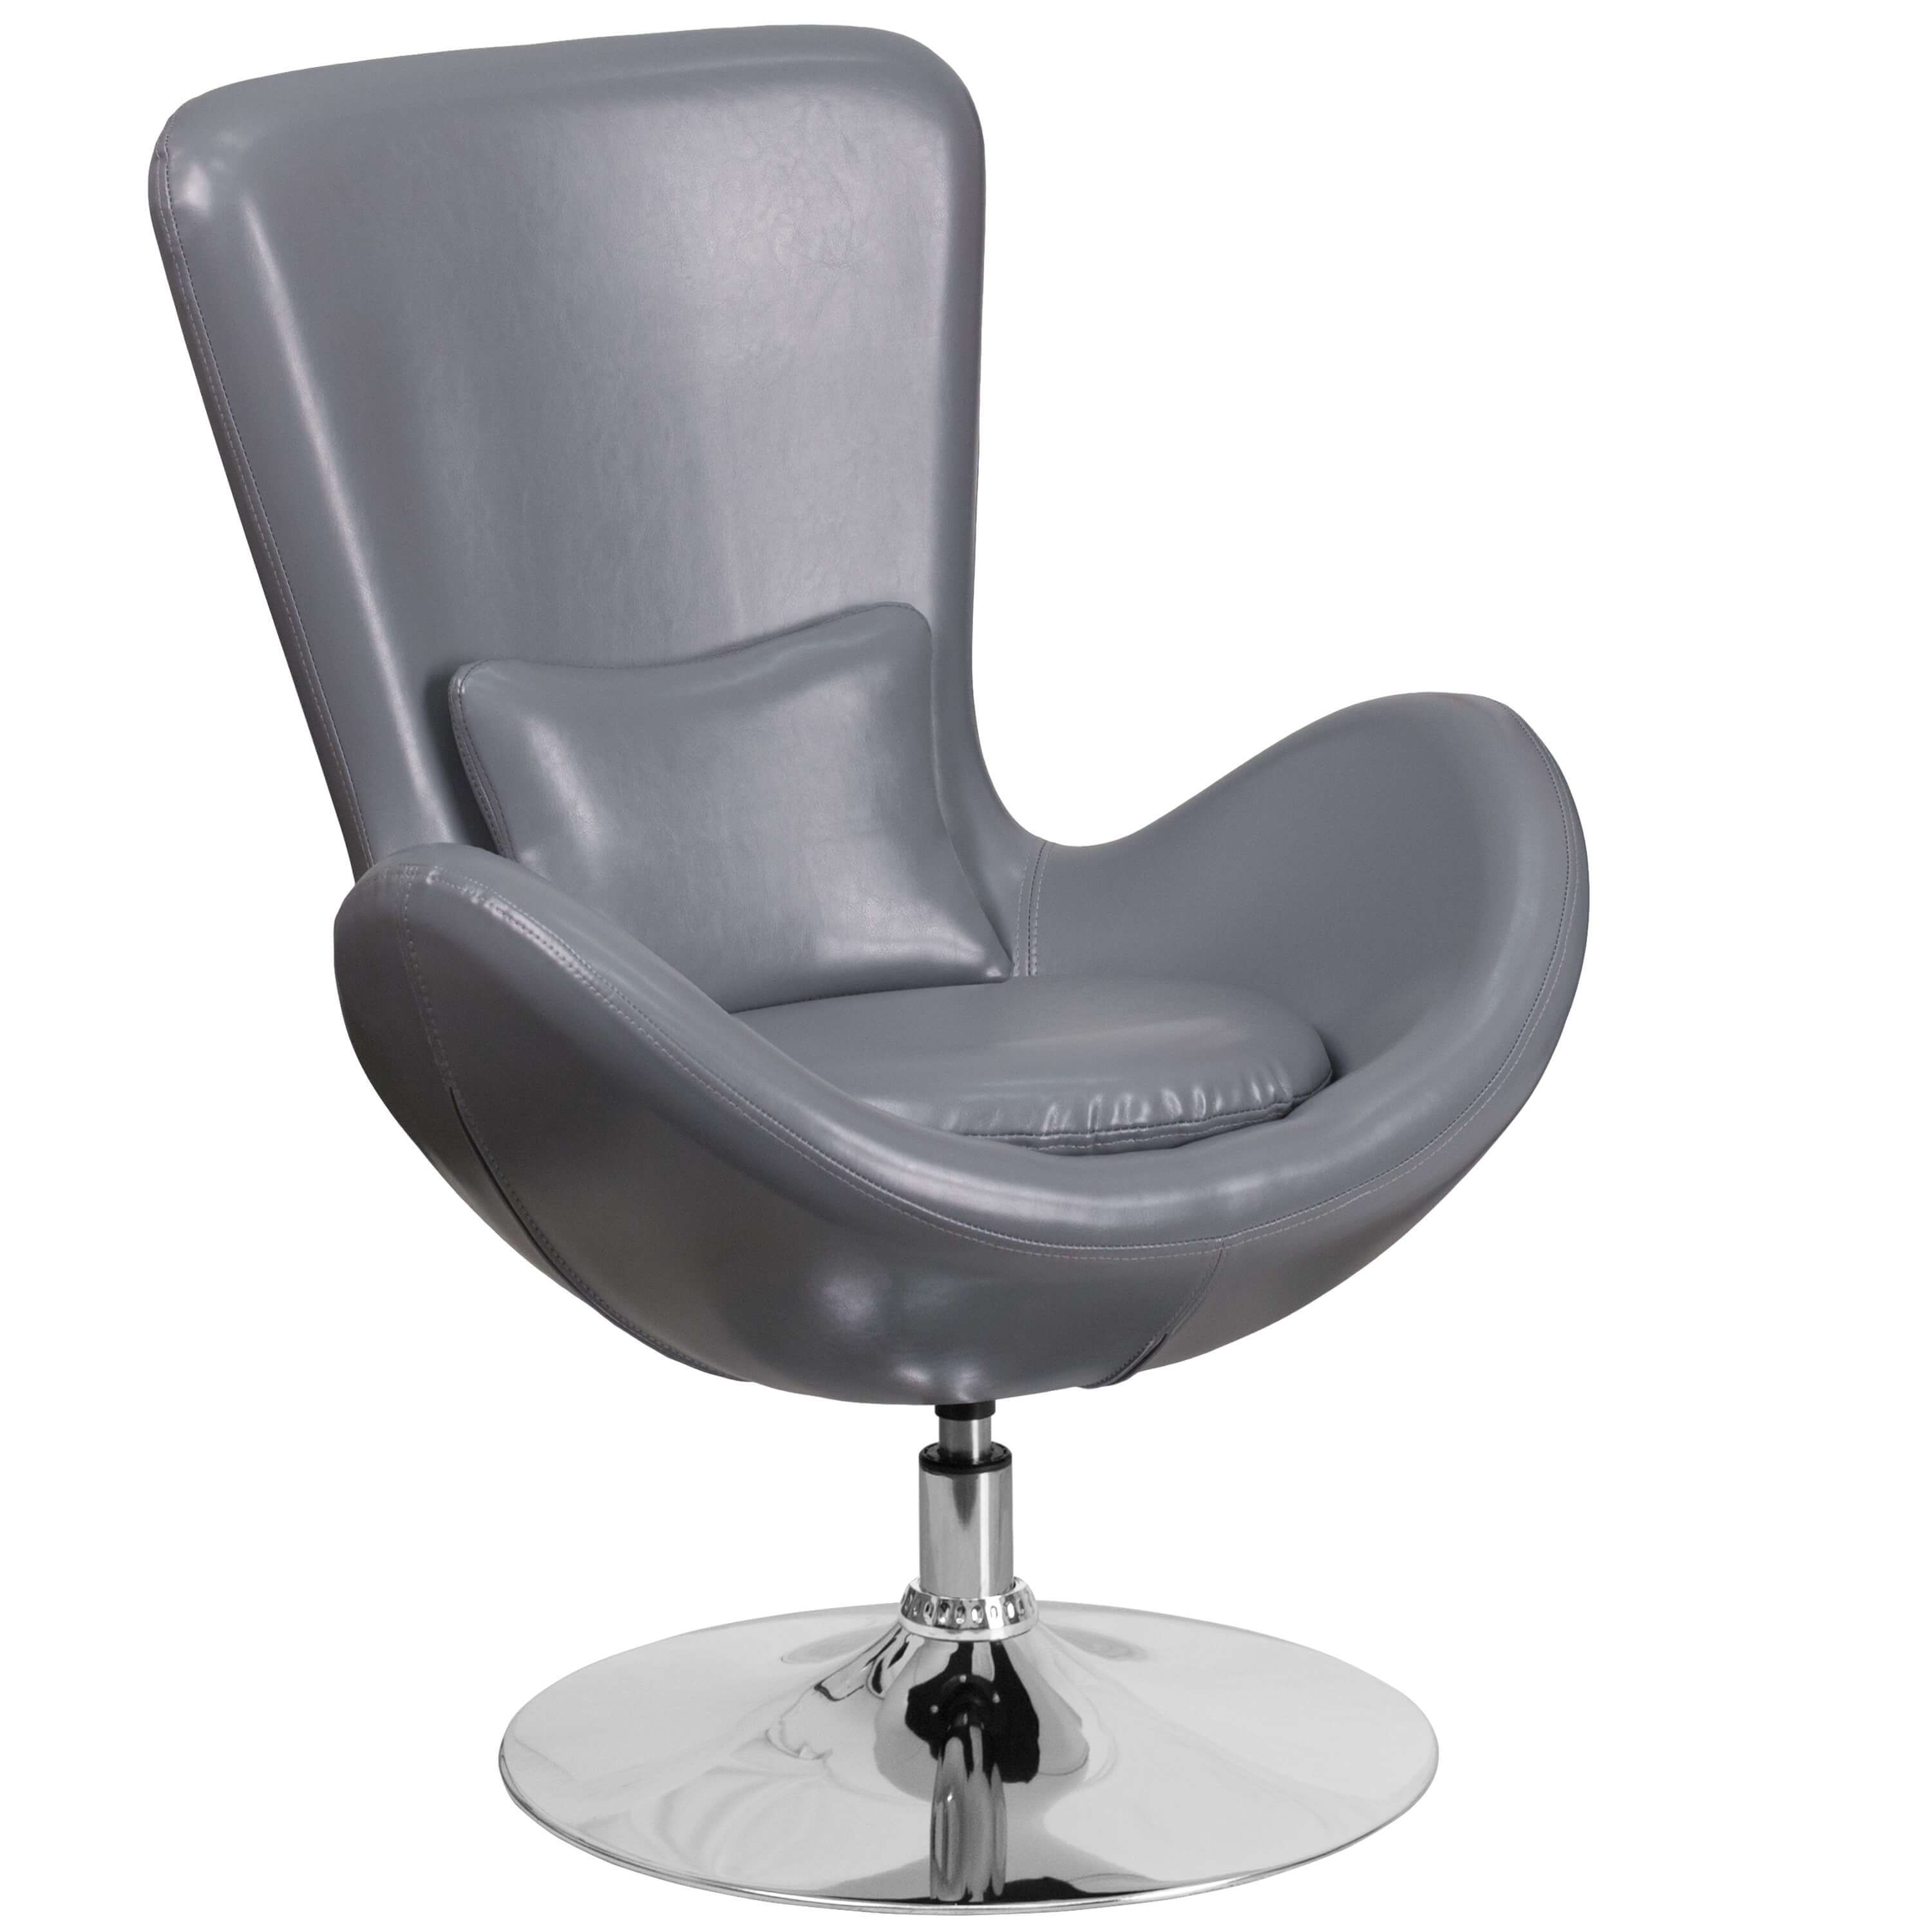 Office lounge chairs CUB CH 162430 GY LEA GG FLA